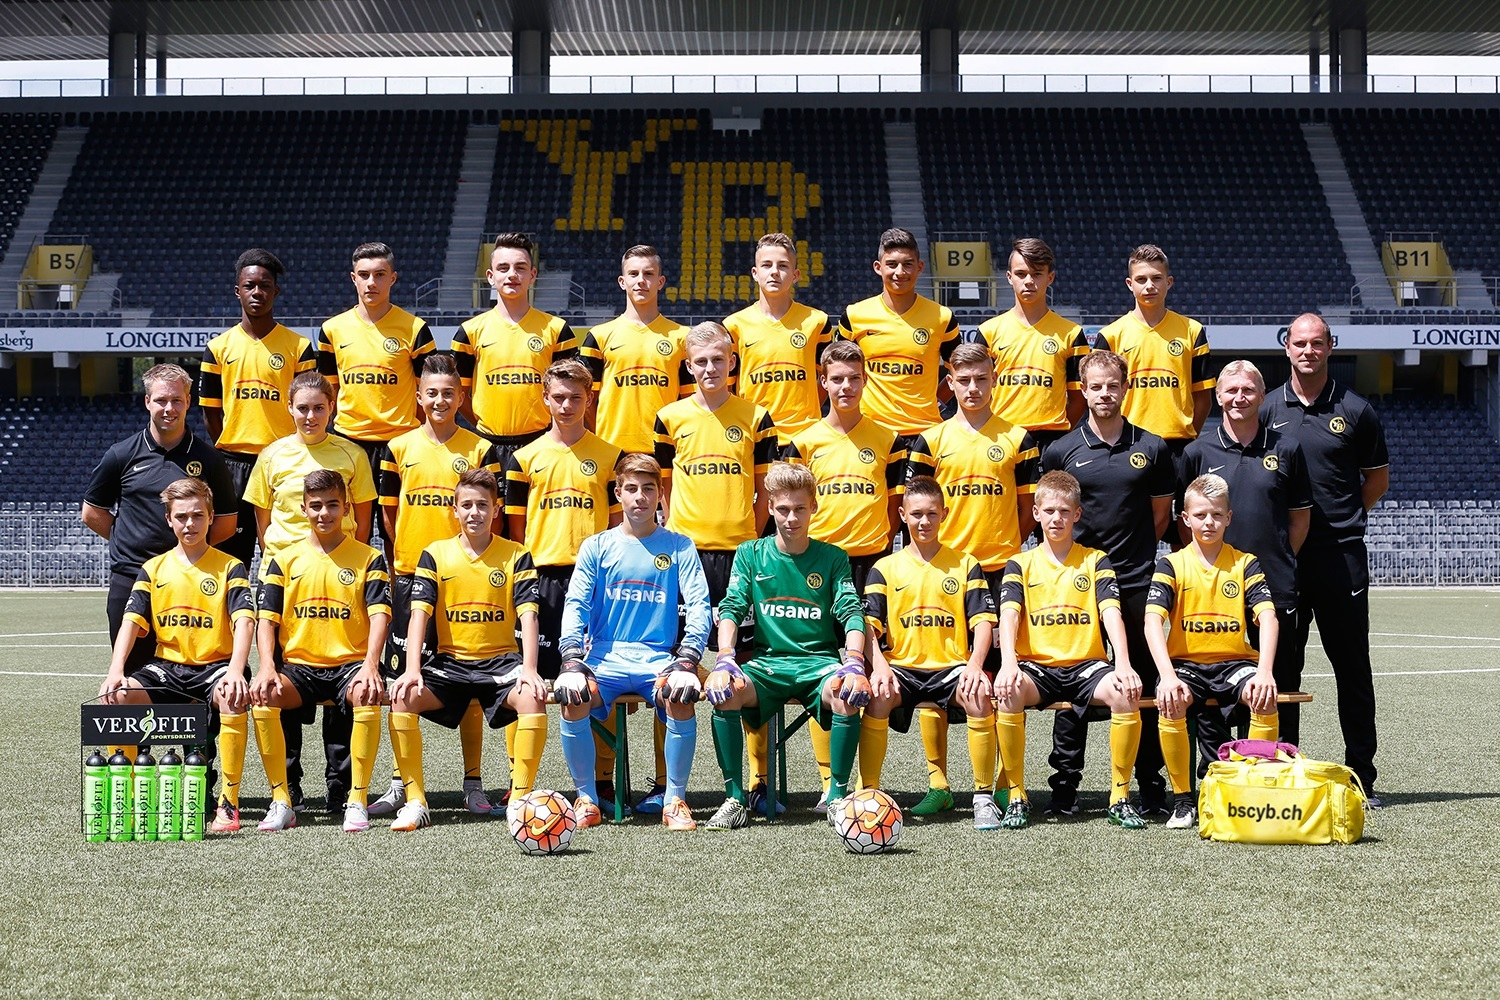 High Resolution Wallpaper | BSC Young Boys 1500x1000 px